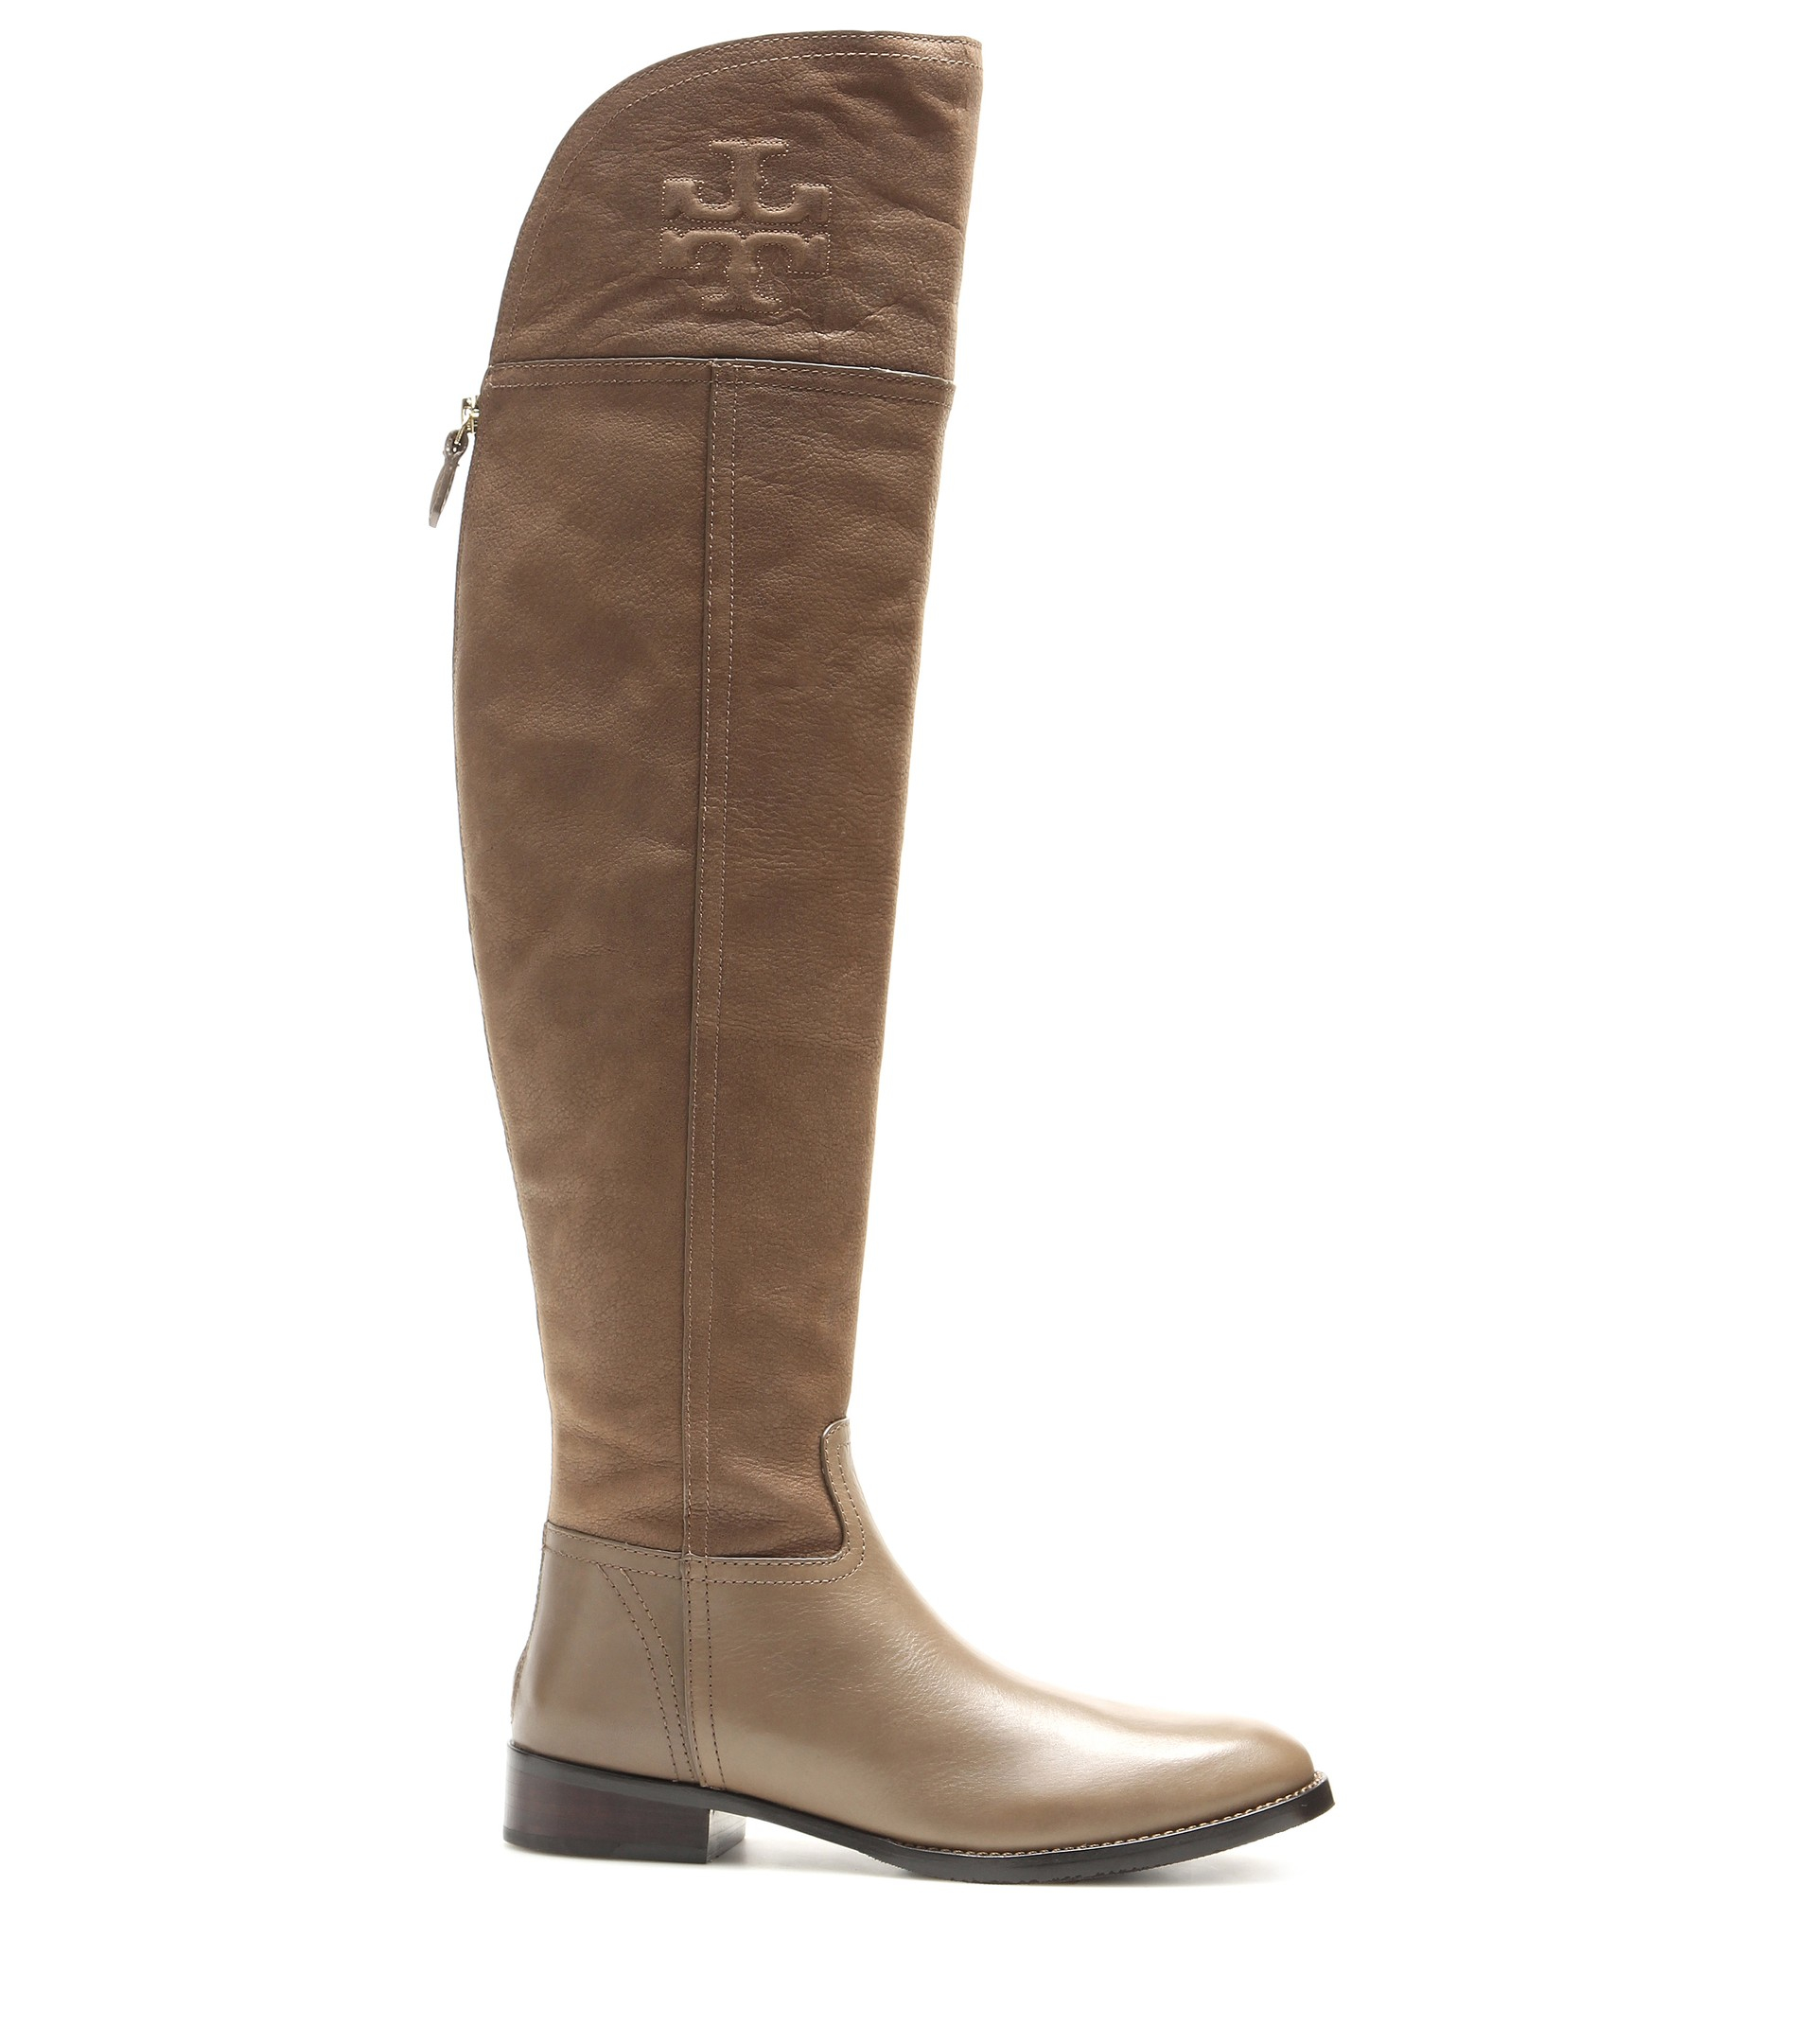 48fea9cc2836 Lyst - Tory Burch Simone Over-The-Knee Boots in Brown